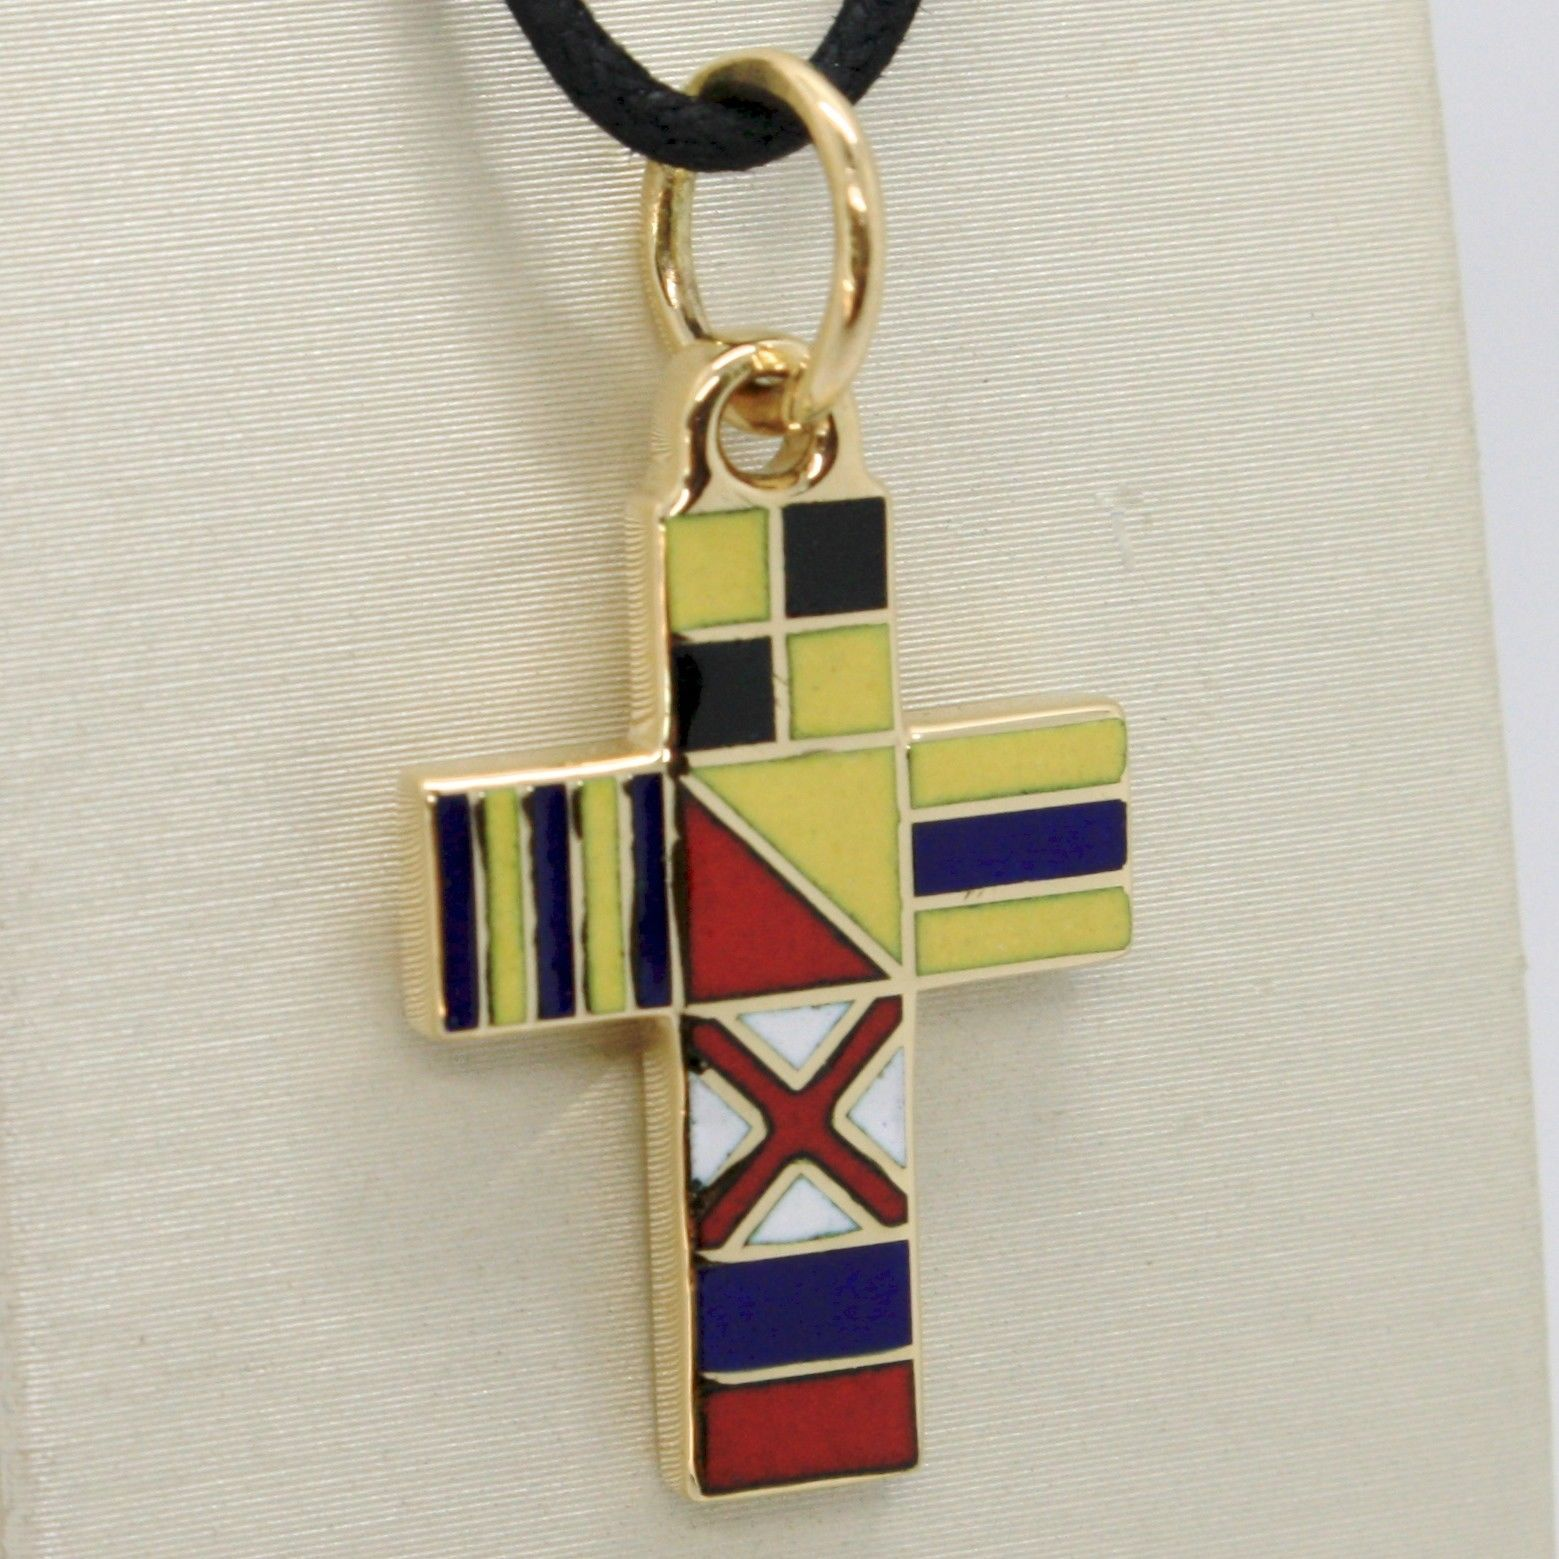 SOLID 18K YELLOW GOLD CROSS NAUTICAL GLAZED FLAGS, PENDANT SQUARED MADE IN ITALY